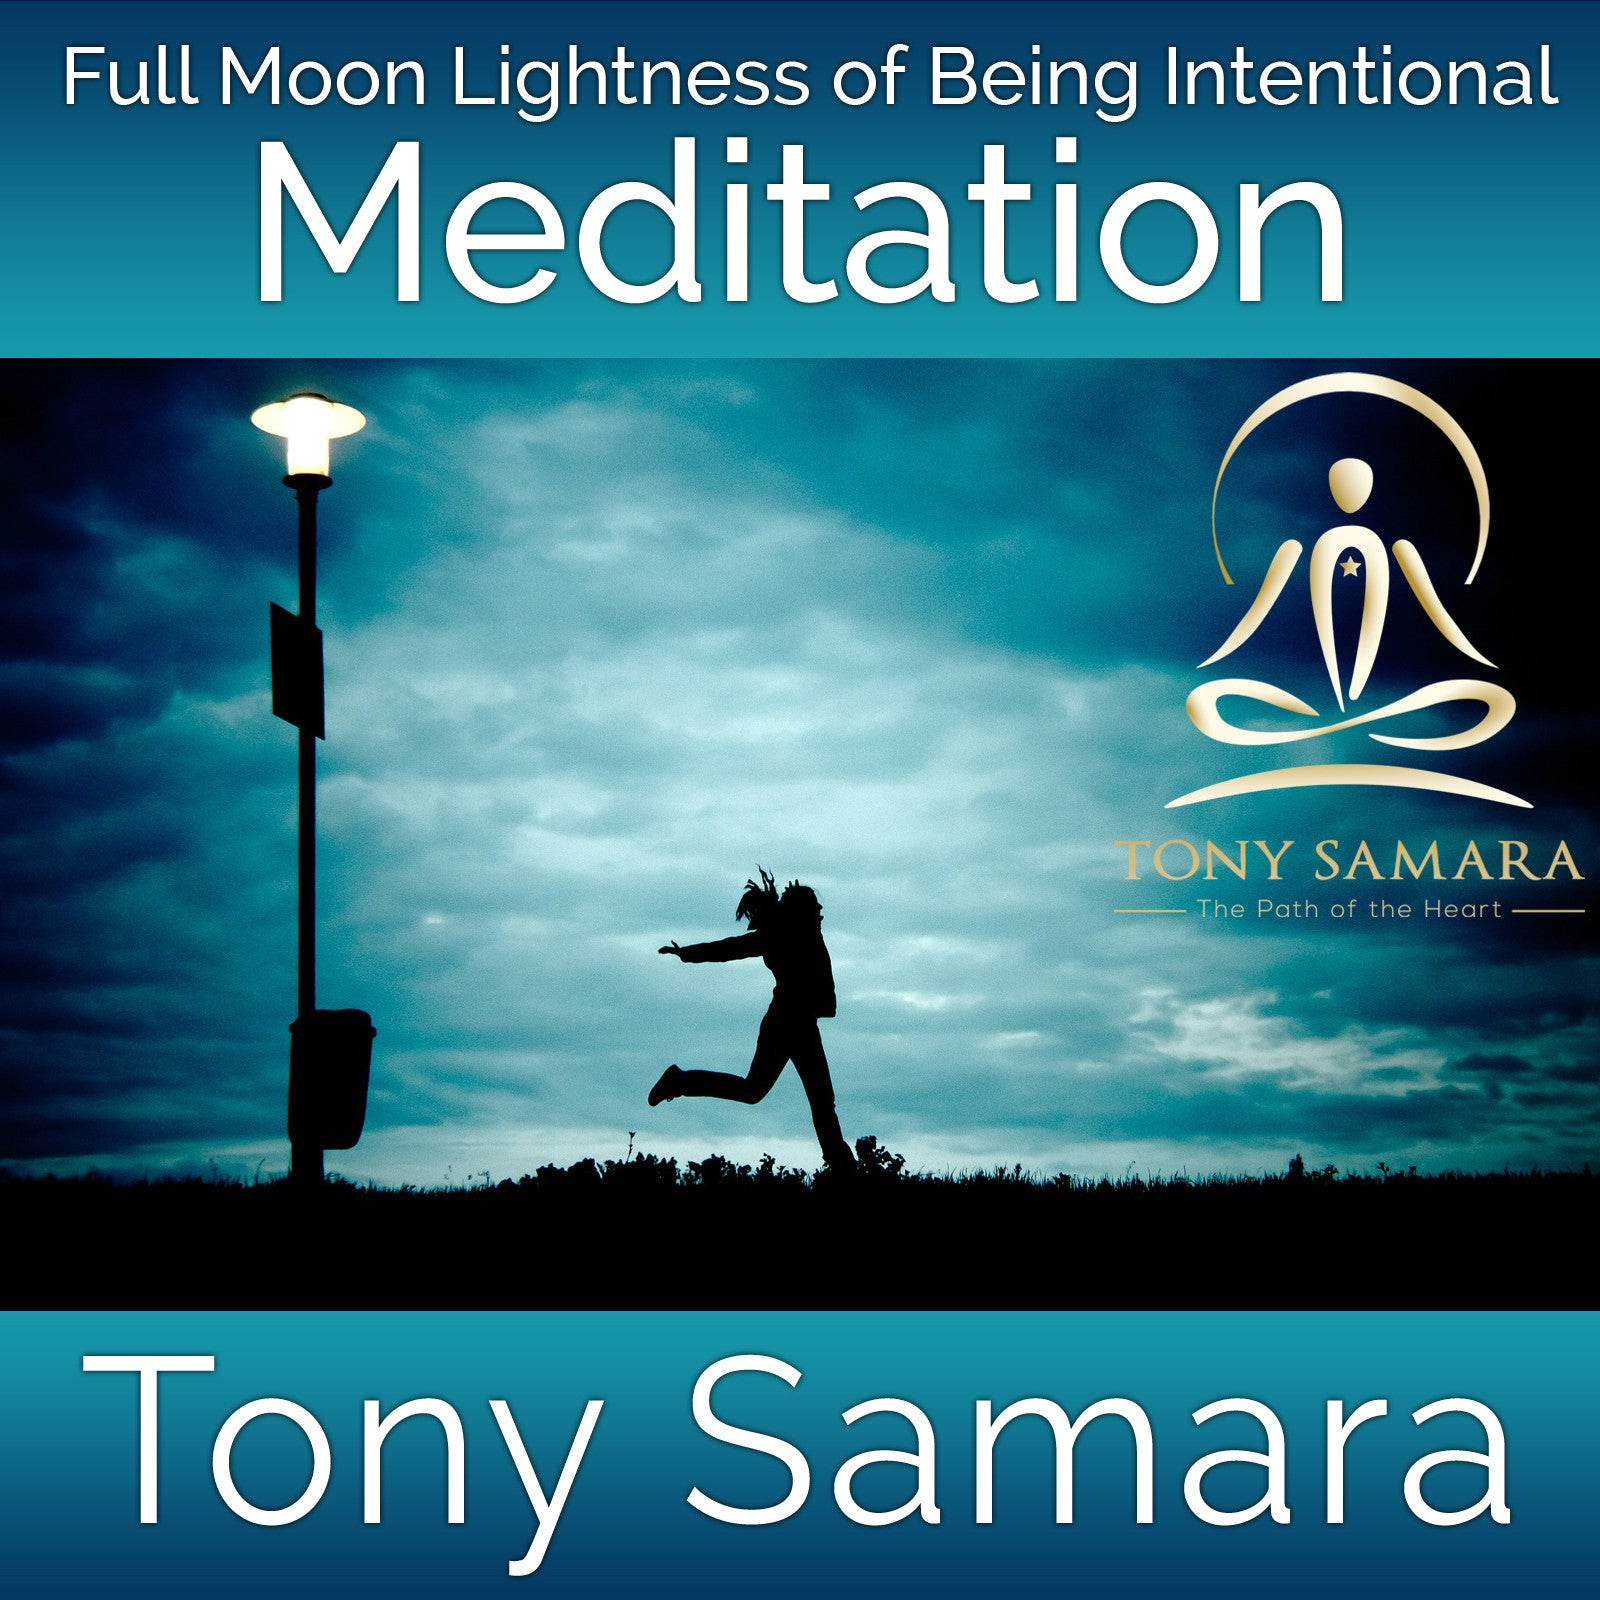 Full Moon Lightness of Being Intentional Meditation (MP3 Audio Download) - Tony Samara Meditation